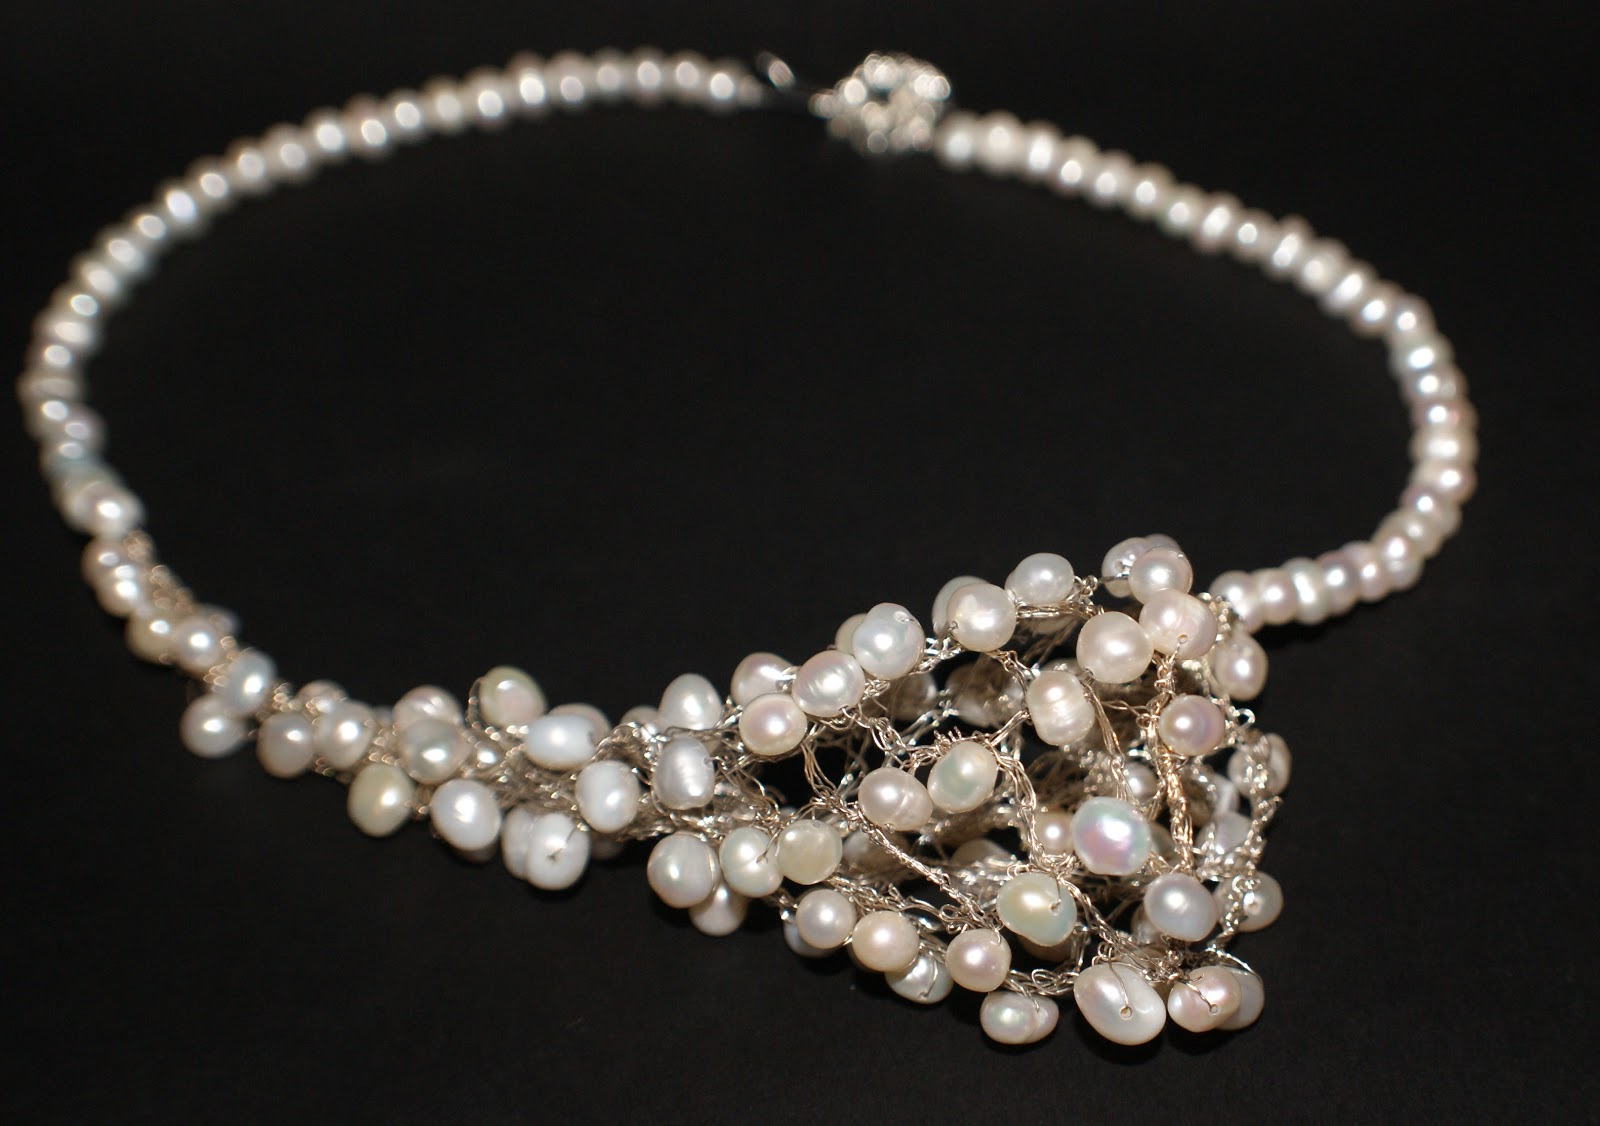 Handmade Wedding Jewellery Ideas : Handmade bridal and wedding jewelry by vintage touch unique designs